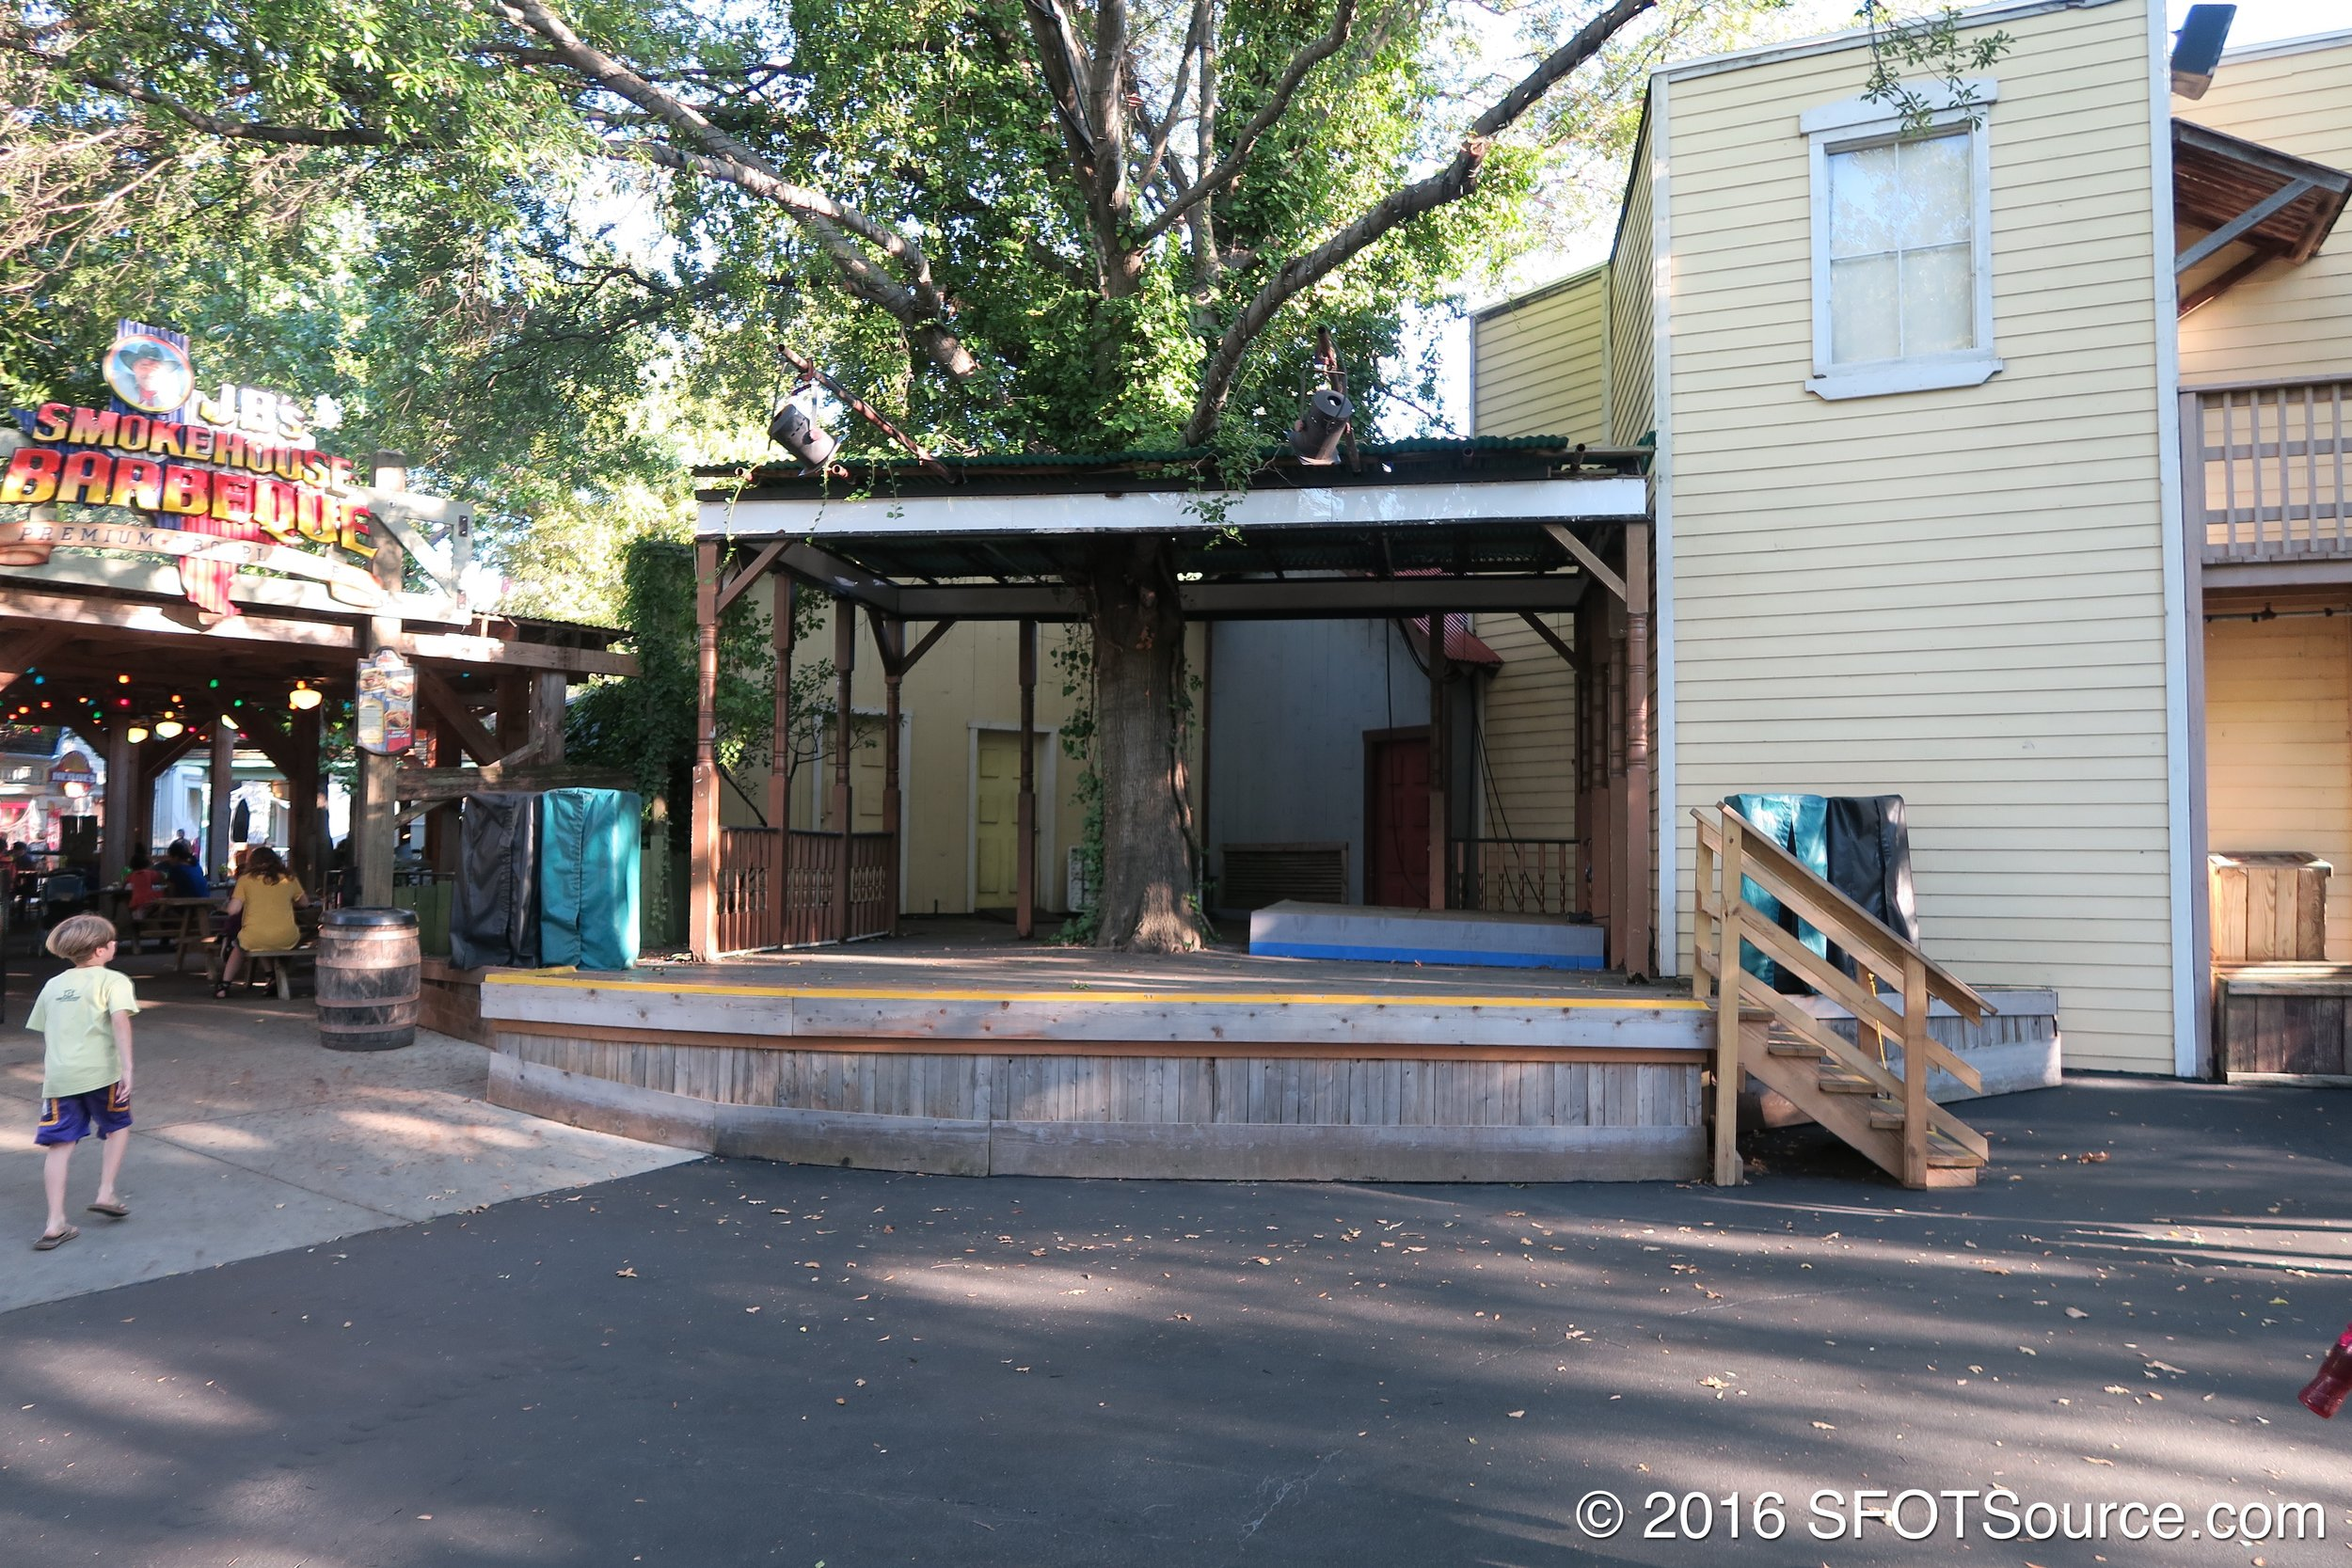 Back Porch Stage is an outdoor stage in Texas.